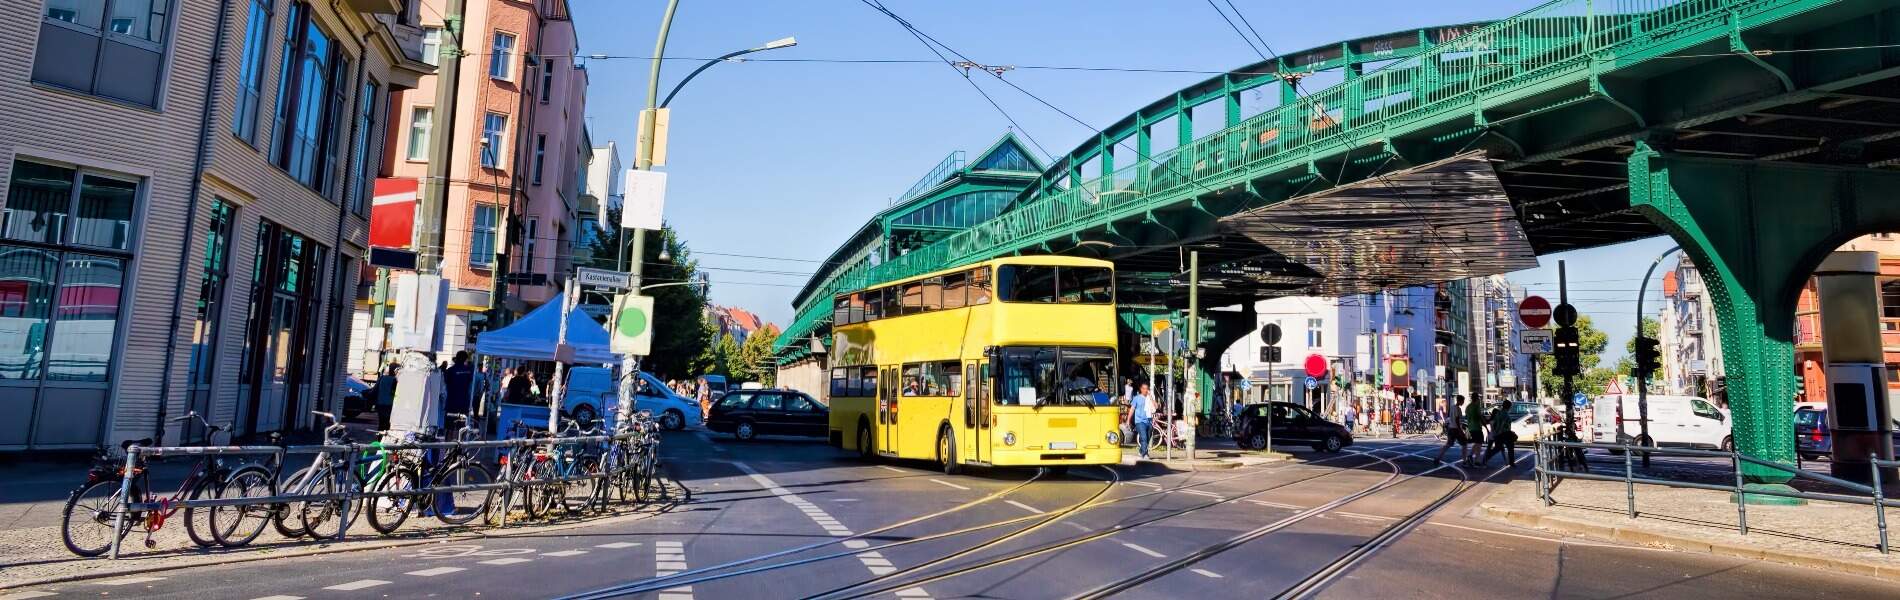 Berlin E-double-decker: technology leap into the 21st century